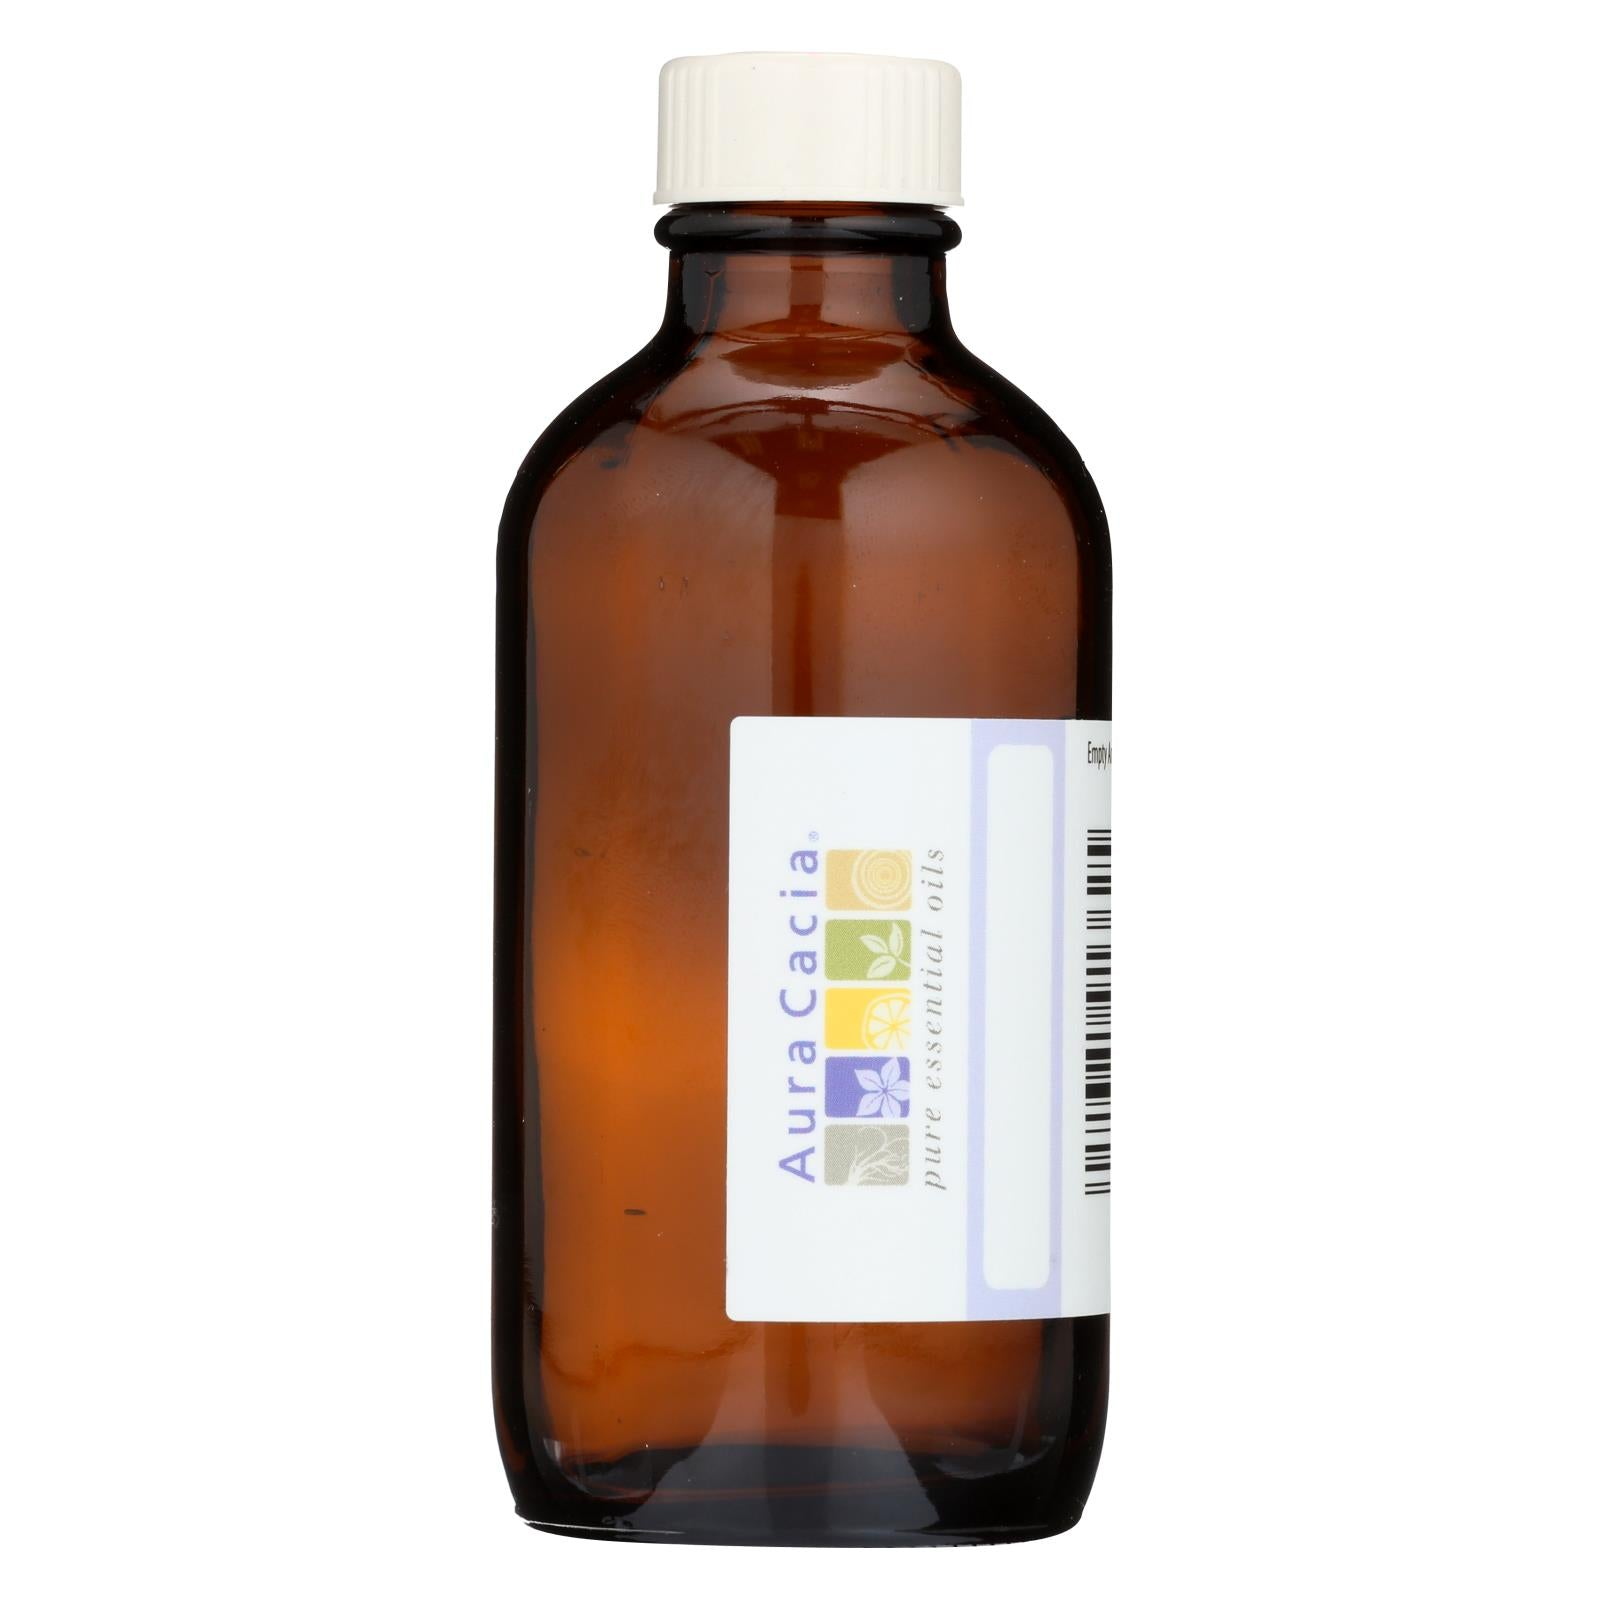 Buy Aura Cacia Bottle - Glass - Amber with Writable Label - 4 oz - Aromatherapy from Veroeco.com